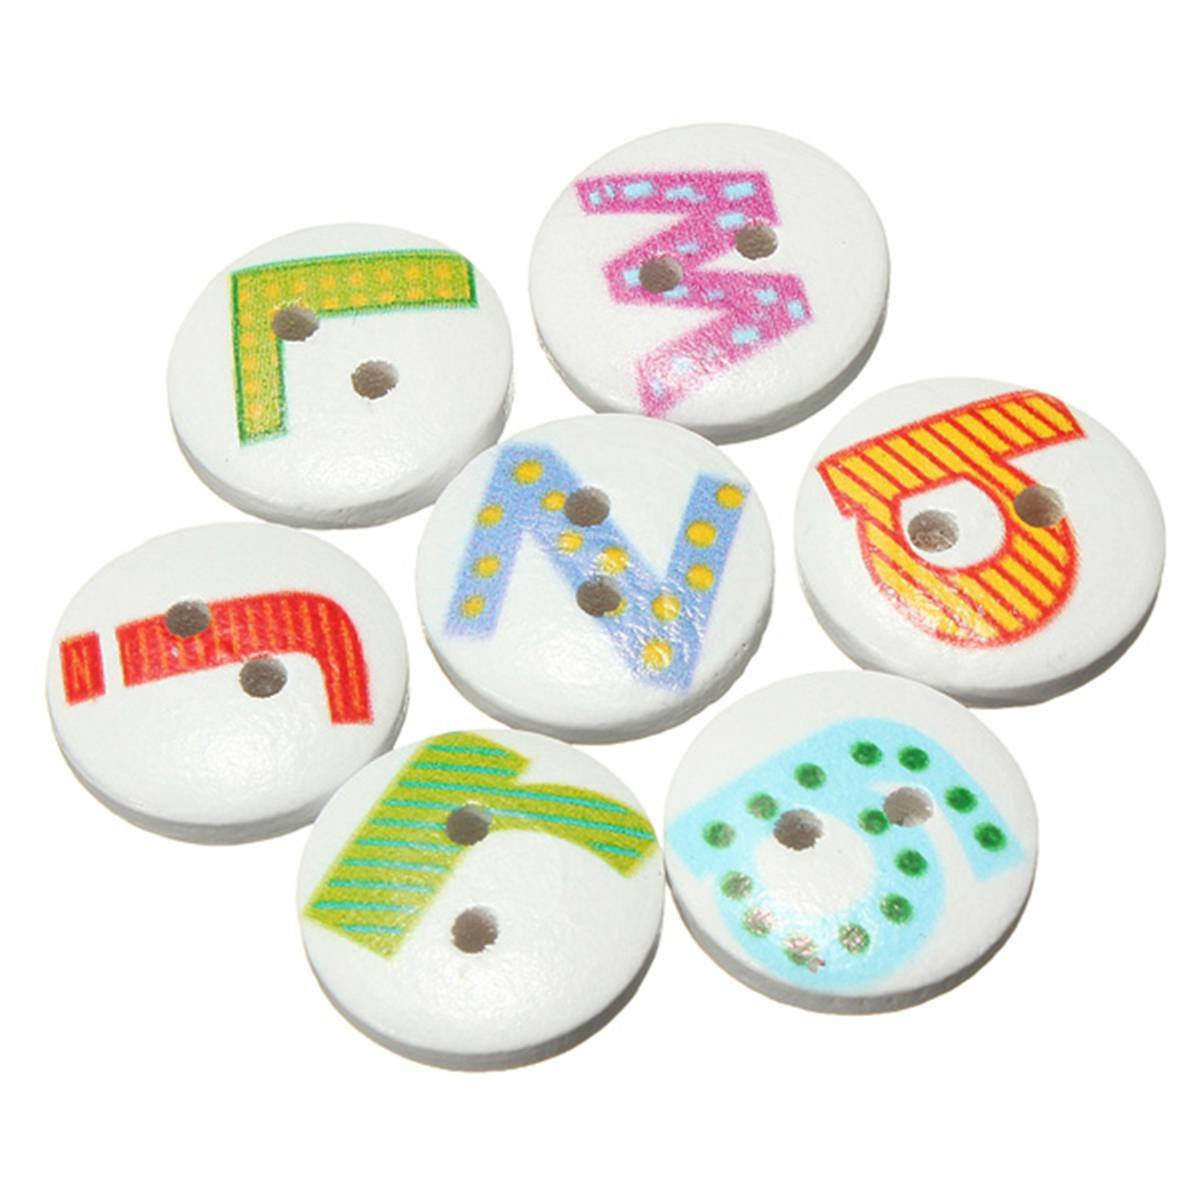 FJS 100Pcs Mixed Painted Letter Alphabet Wooden Sewing Button Scrapbooking